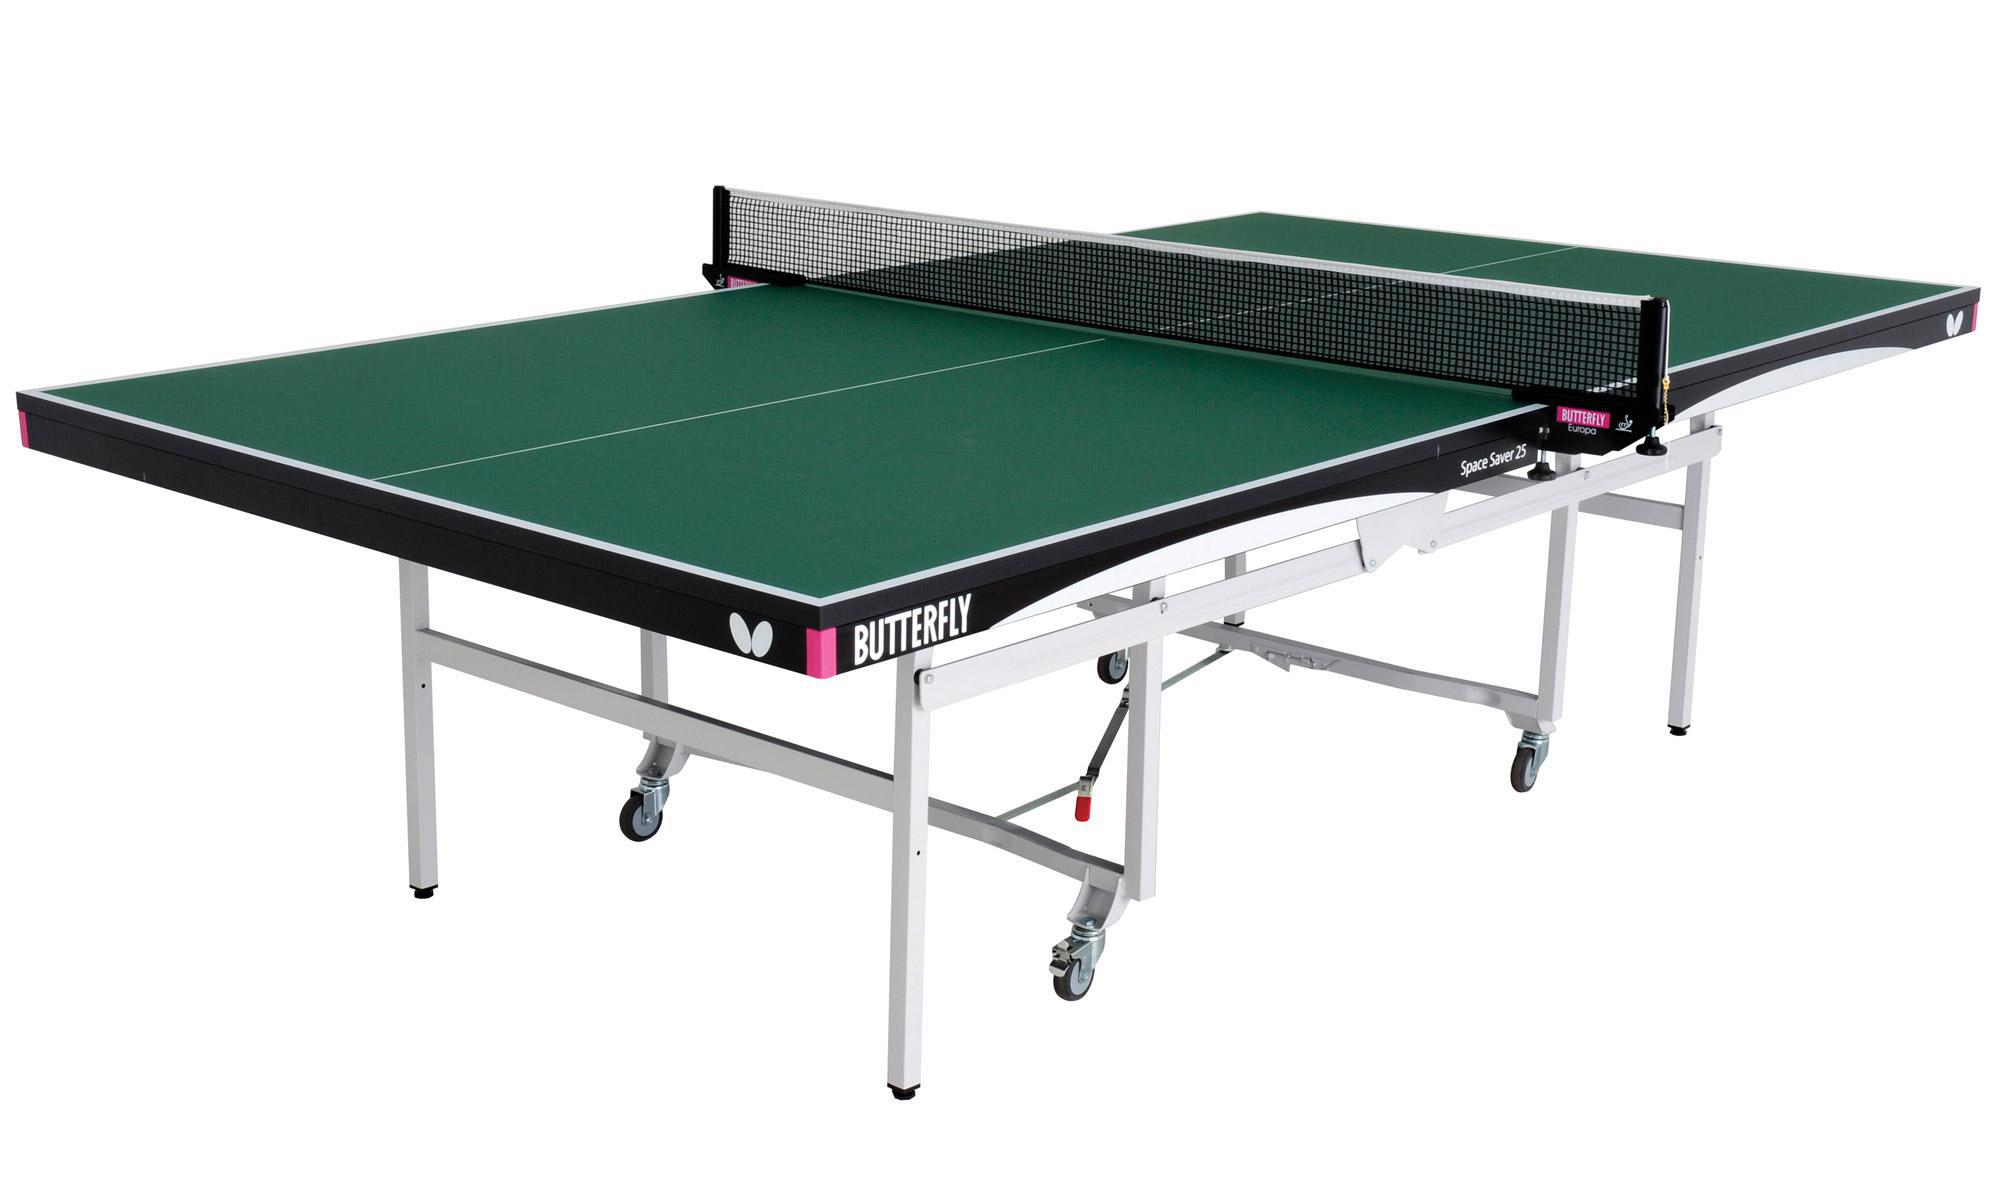 Butterfly space saver 25 rollaway indoor table tennis - Butterfly table tennis official website ...